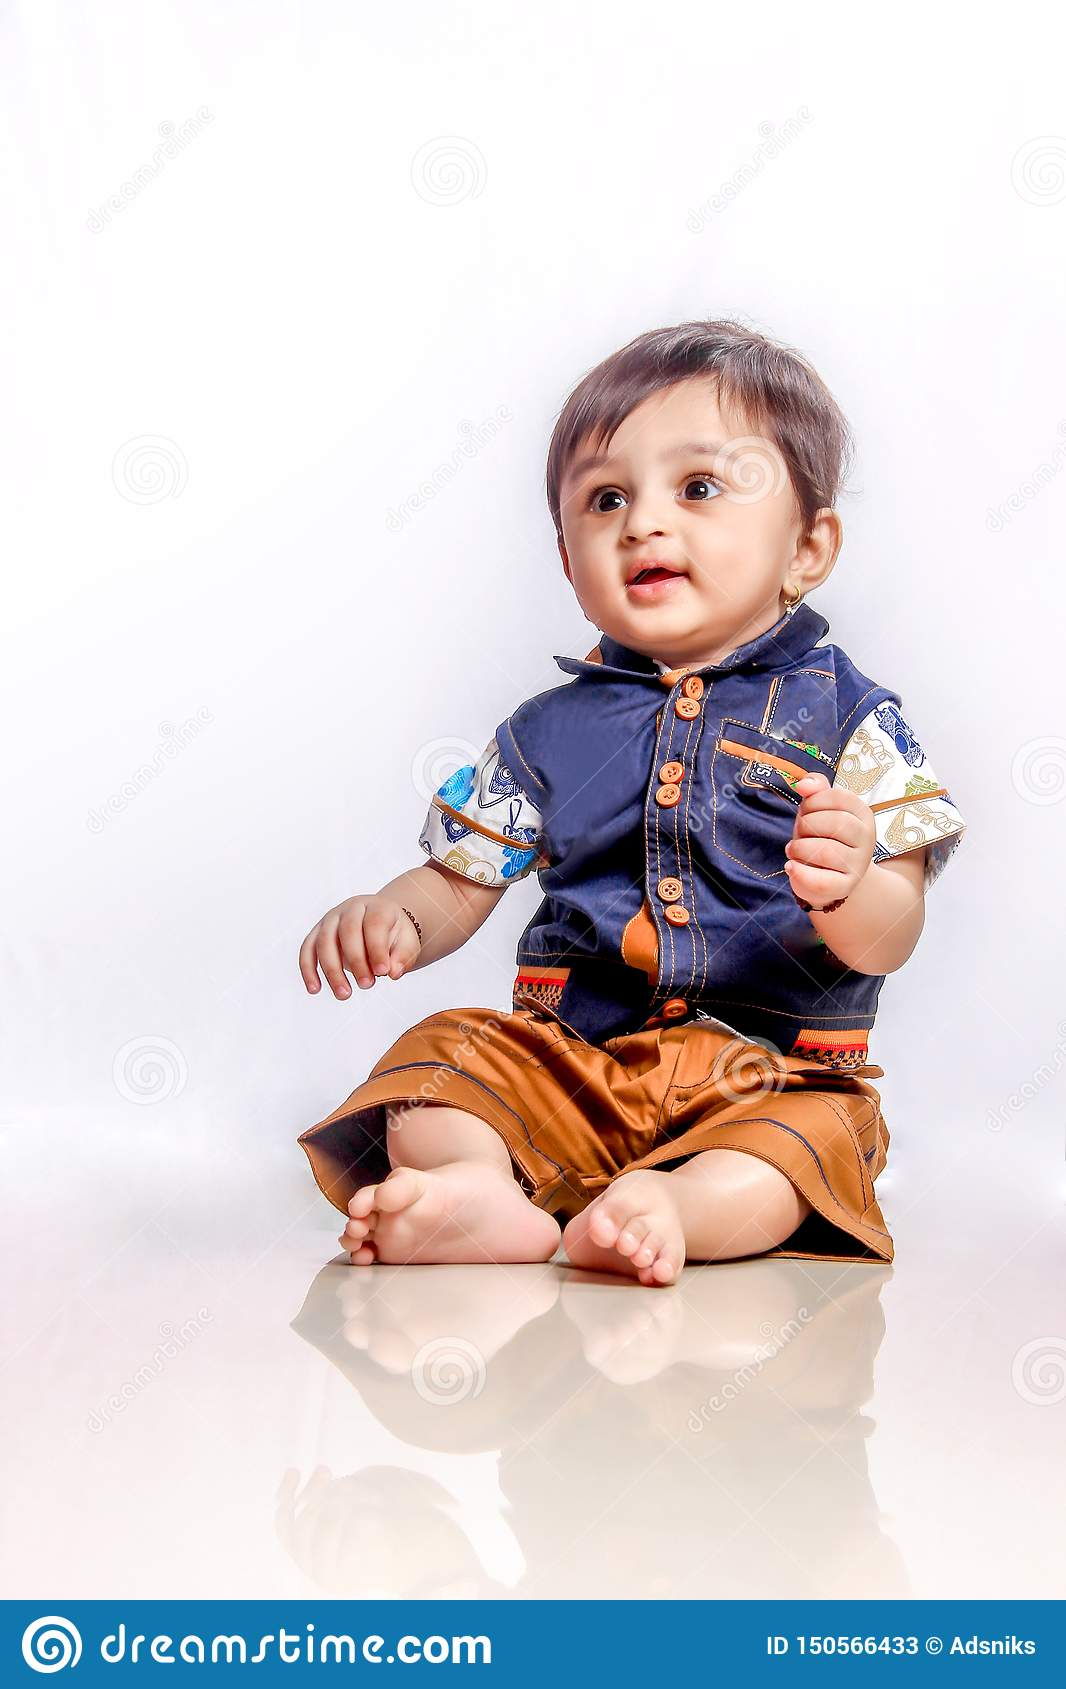 Cute Indian Baby Boy Smiling Stock Image Image Of Lifestyle Adorable 150566433